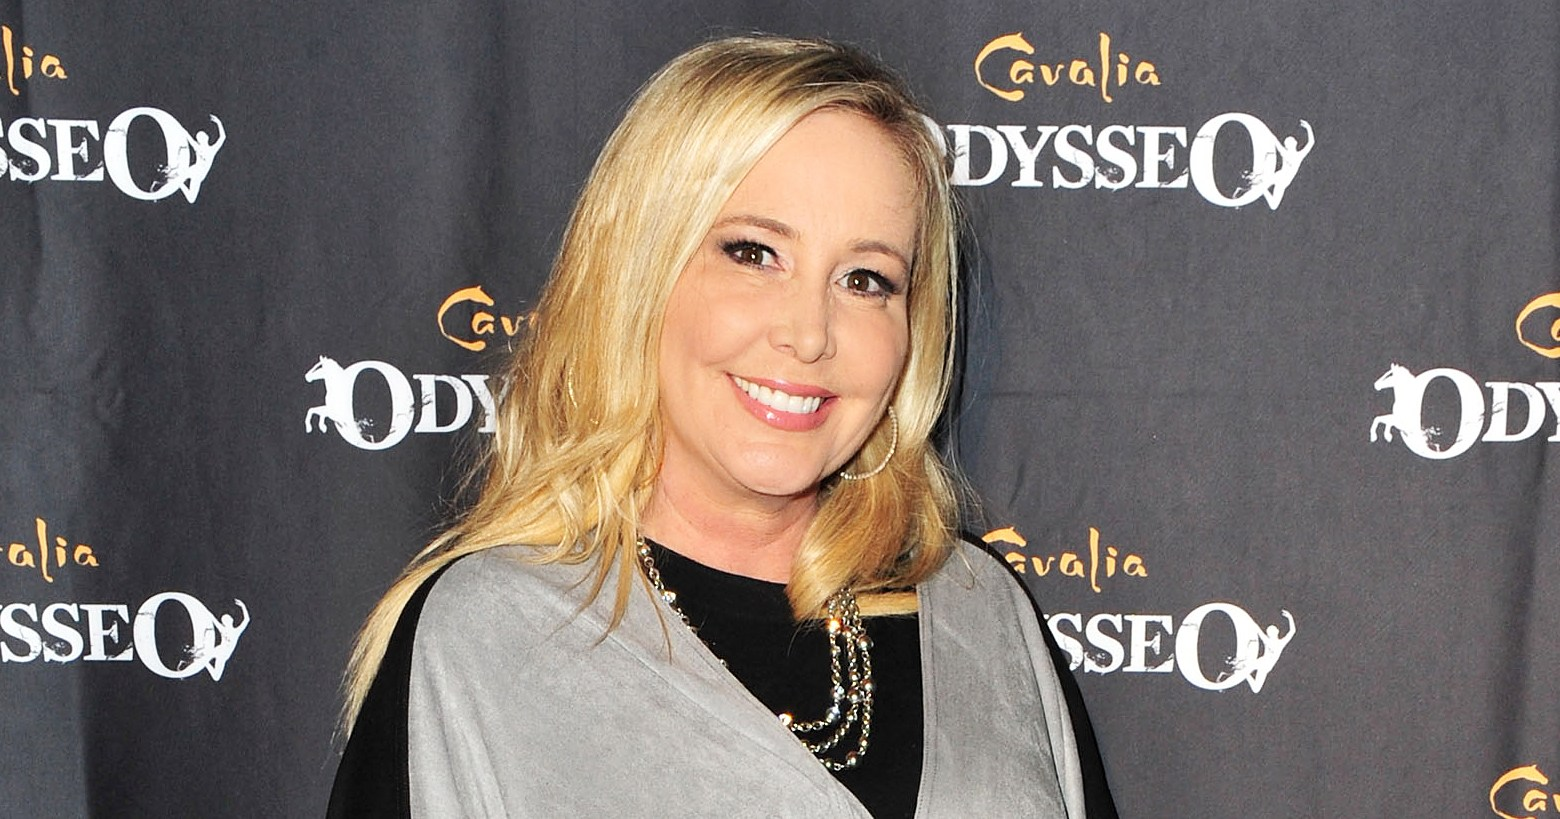 'RHOC' Star Shannon Beador Opens Up About Weight Loss: 'I'm Getting There'